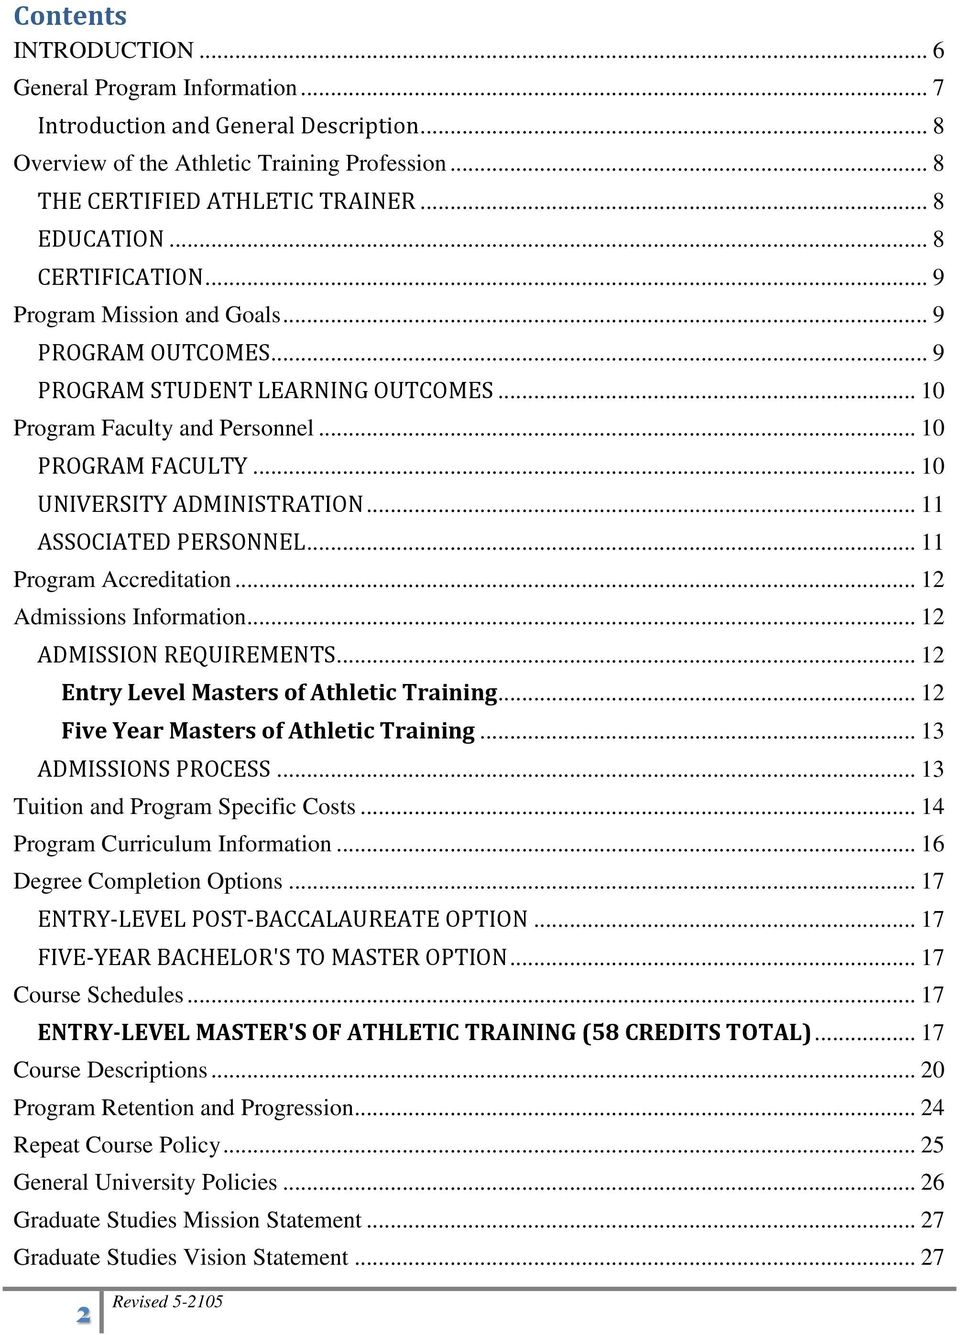 .. 11 ASSOCIATED PERSONNEL... 11 Program Accreditation... 12 Admissions Information... 12 ADMISSION REQUIREMENTS... 12 Entry Level Masters of Athletic Training.